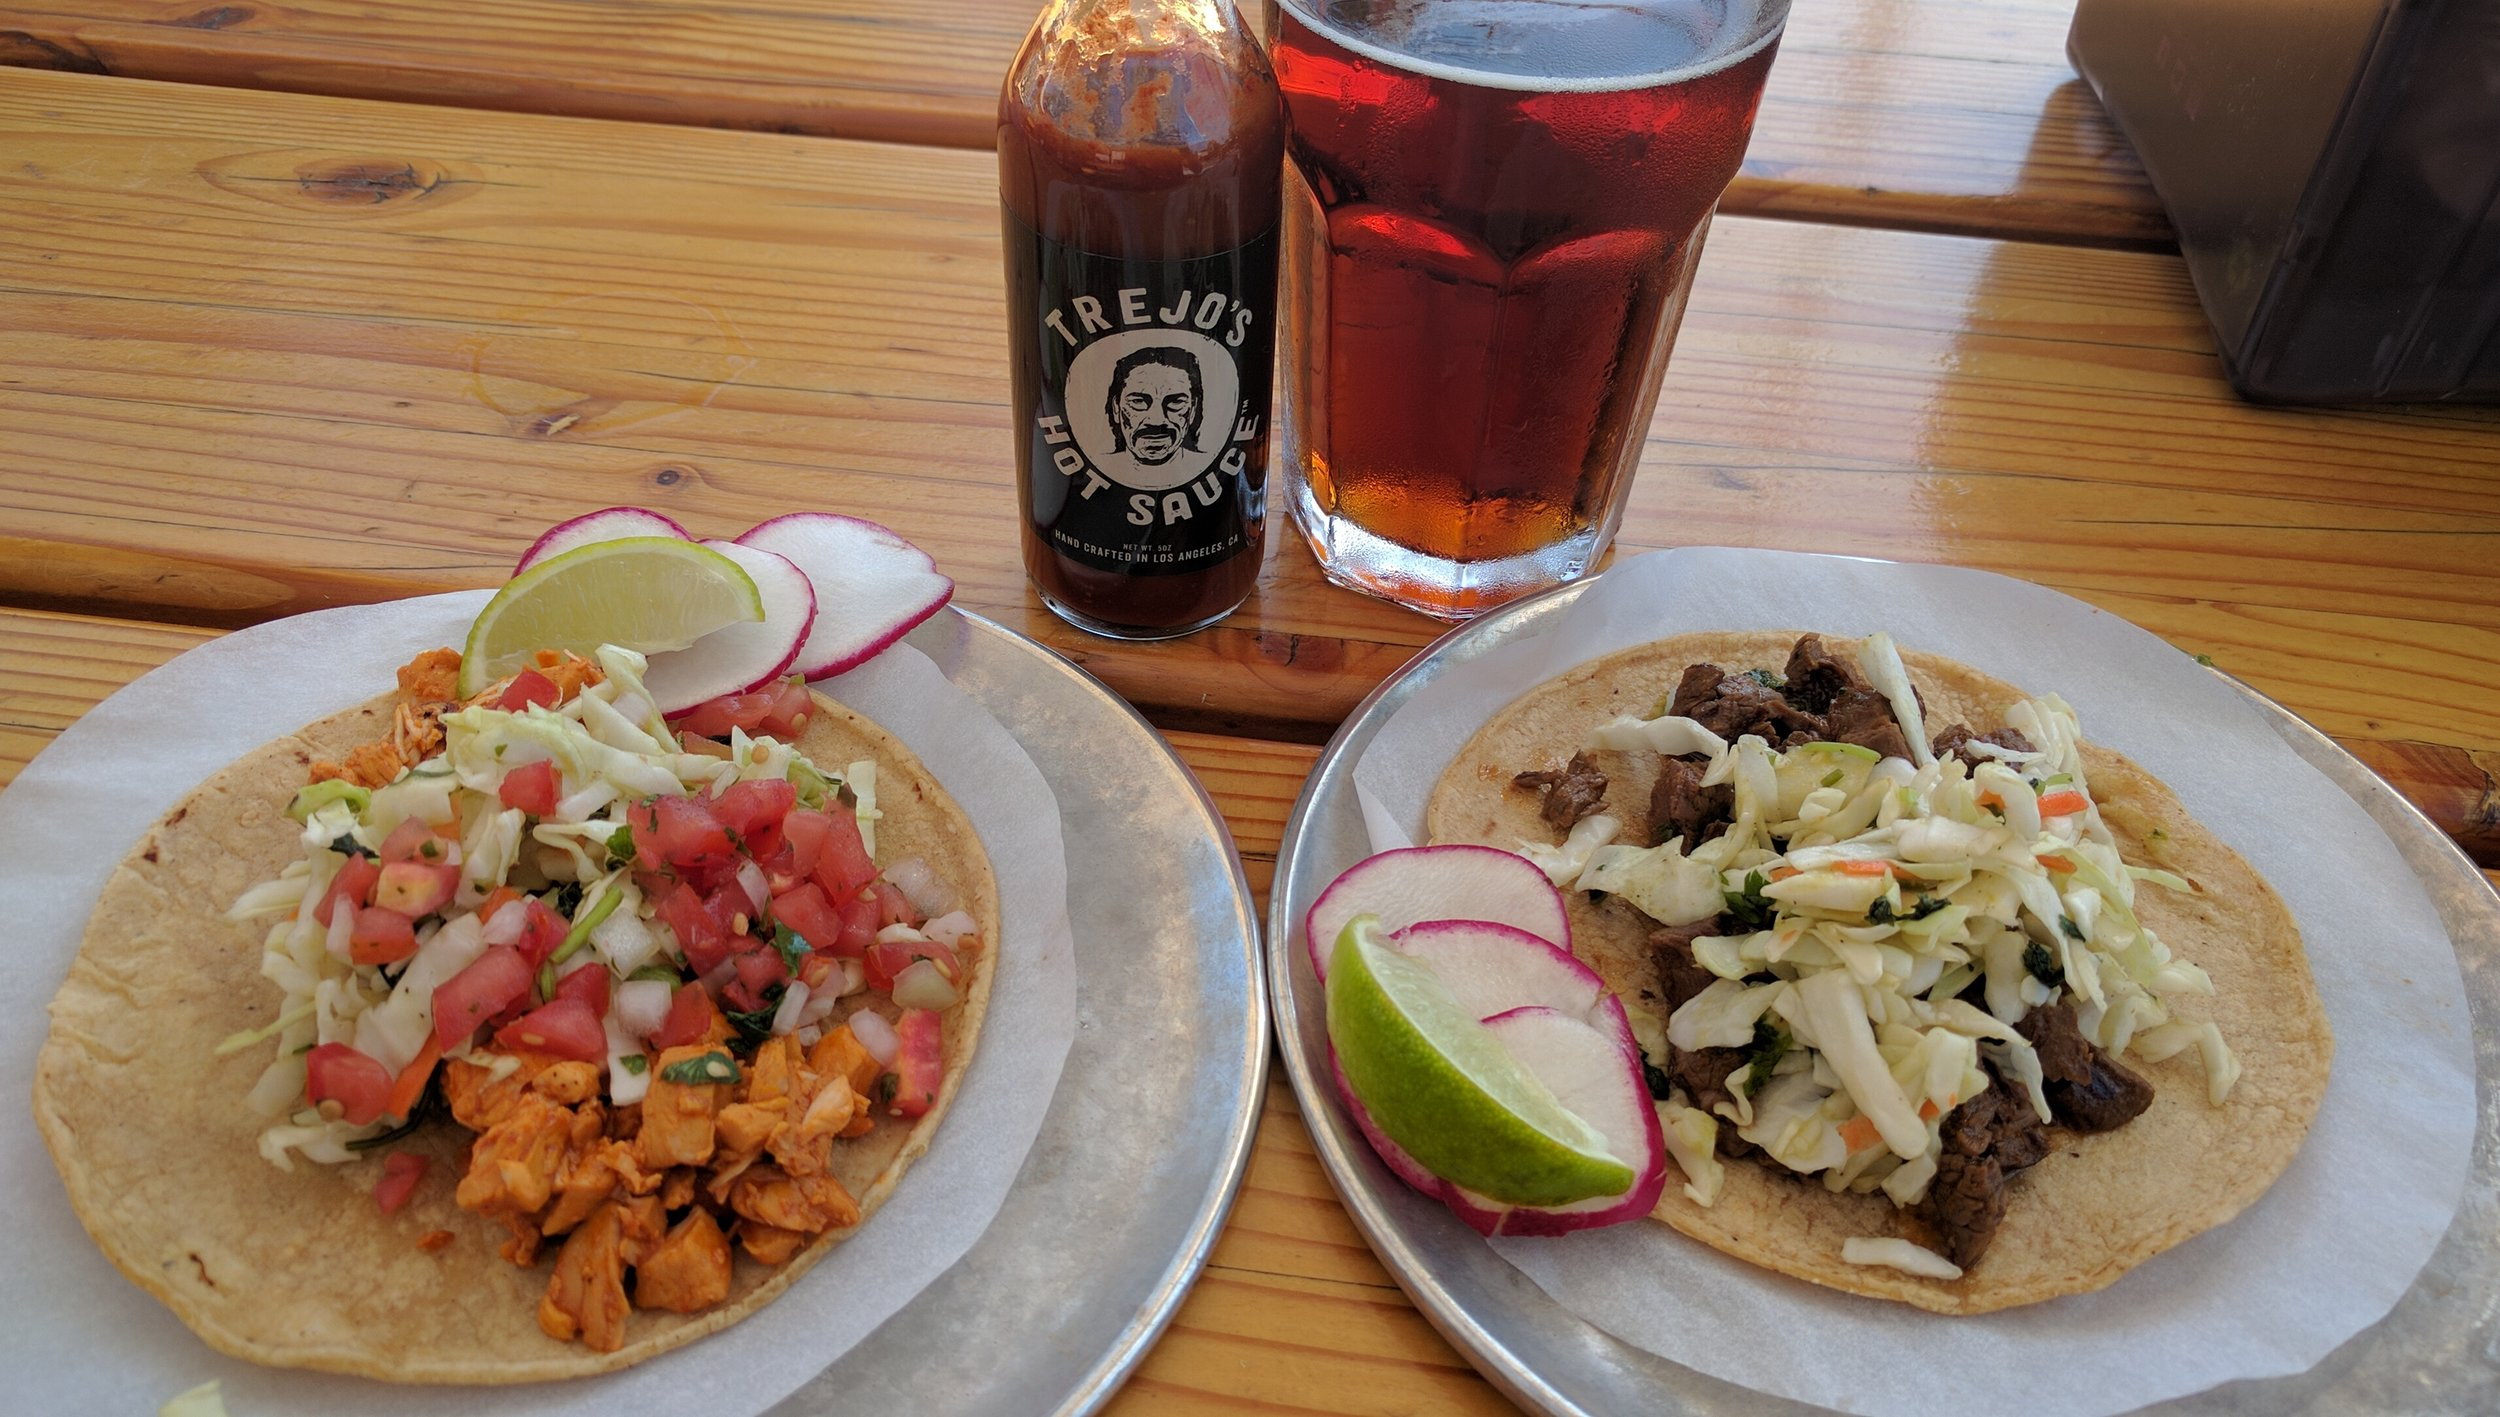 Jidori chicken and steak asado tacos before the application of the Trejo's hot sauce